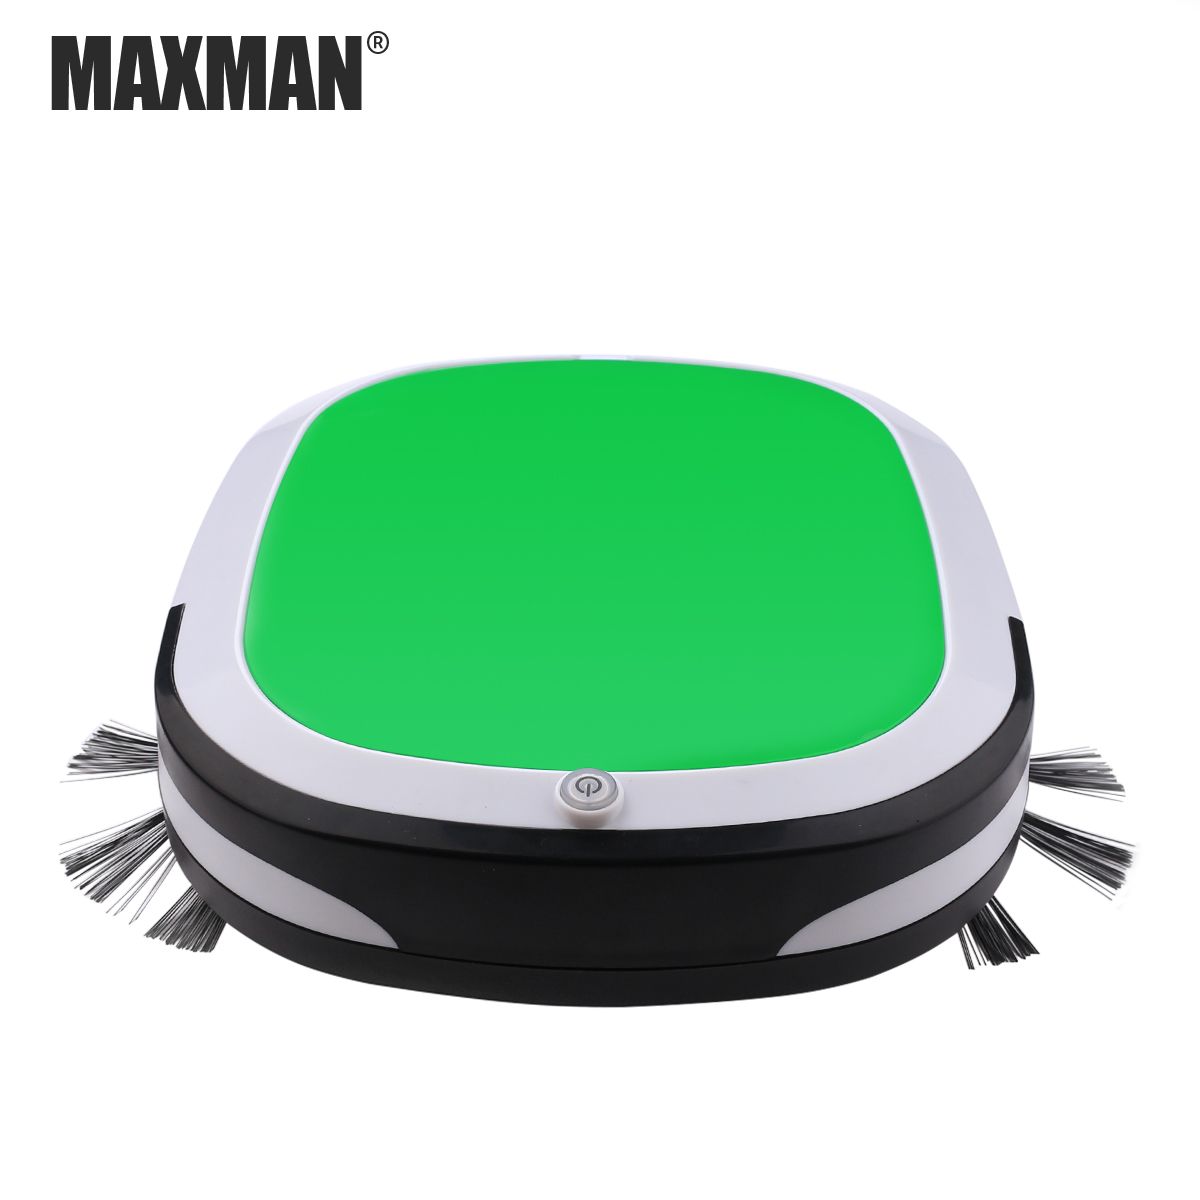 Здесь продается  MAXMAN Robot Vacuum Cleaner Cyclic Charging 300Pa Suction for Home Sweeping Dust Mopping for Wood Floor Robot Vacuum  Инструменты